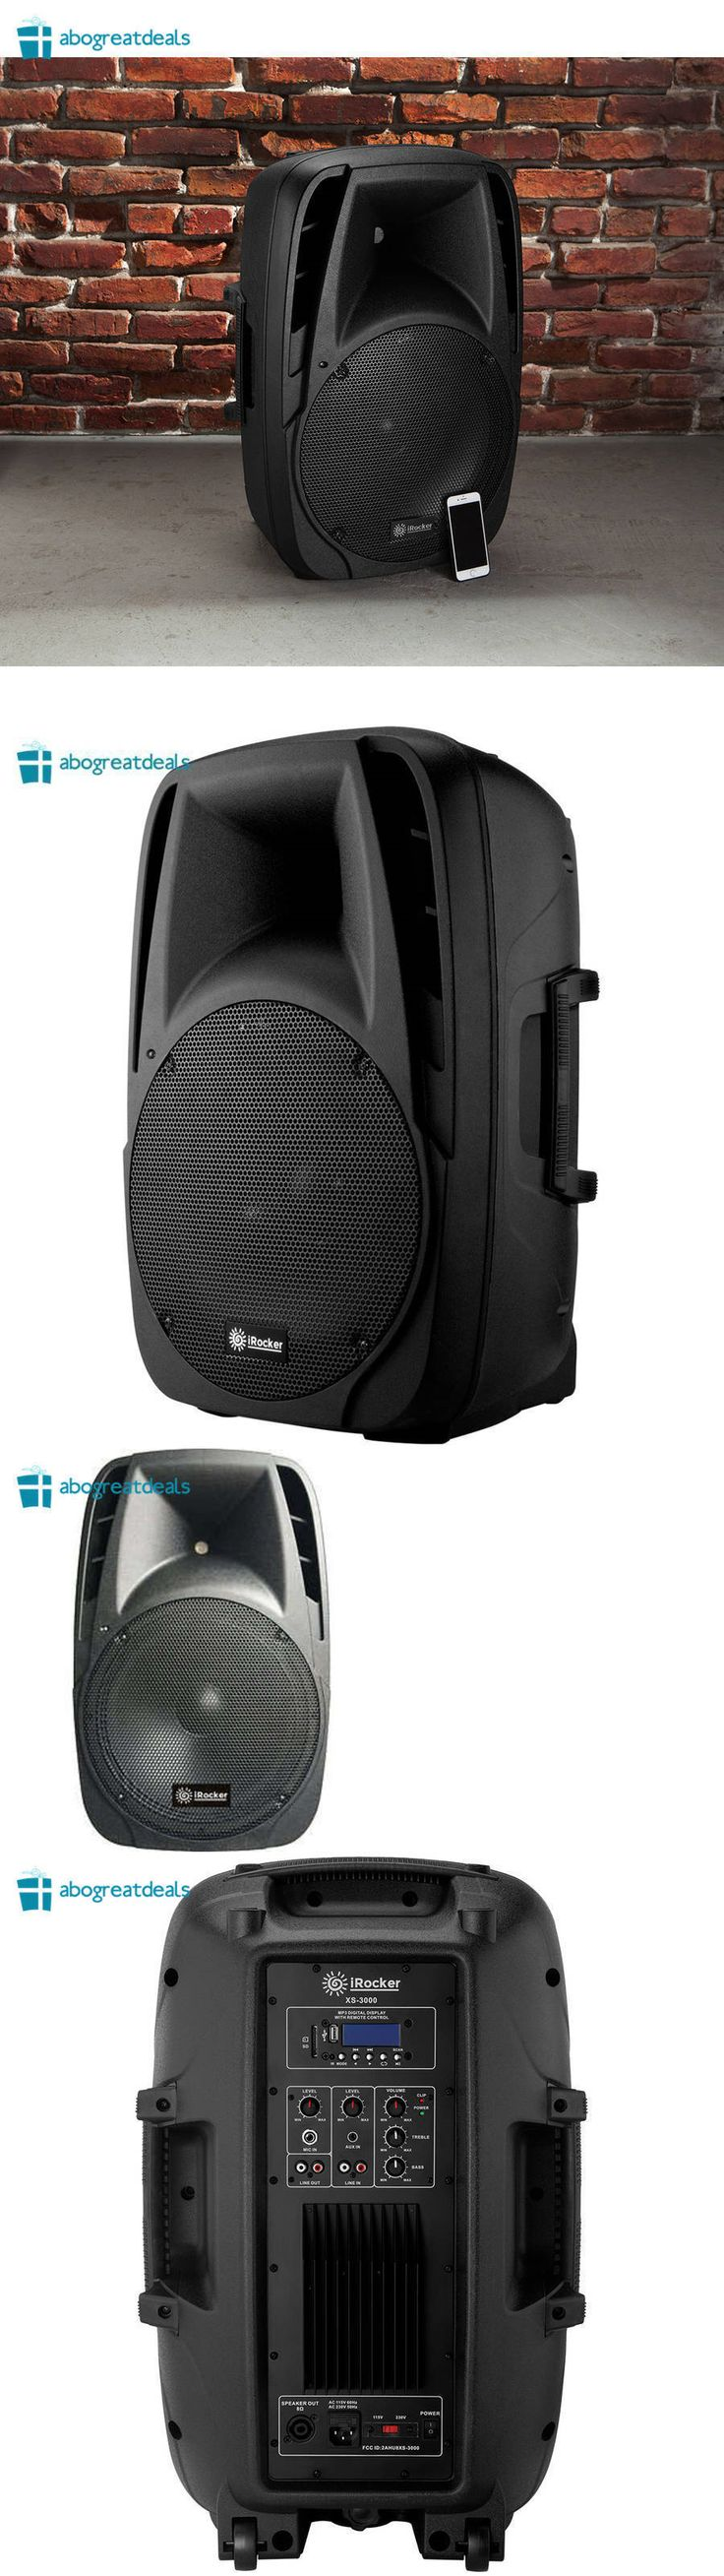 Portable Stereos Boomboxes: Irocker Portable Party Loud Speaker System On Wheels 1500W Bluetooth Usb Rca Fm -> BUY IT NOW ONLY: $104.23 on eBay!